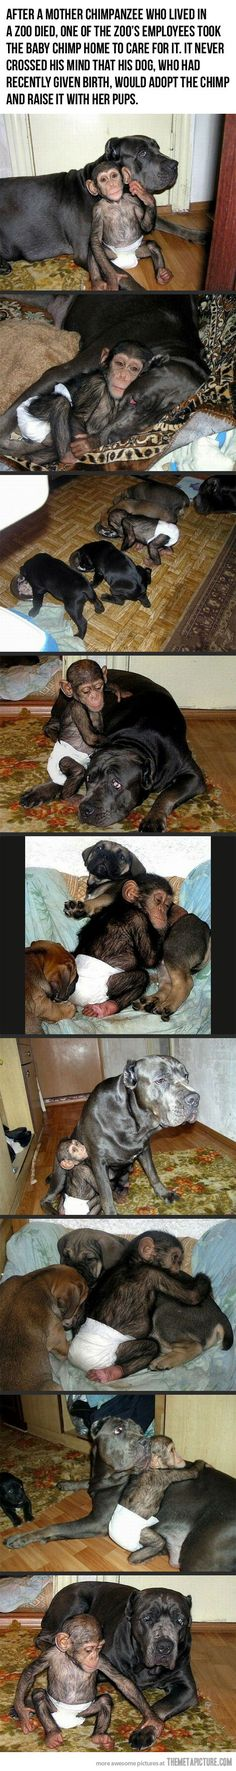 Dog Adopts Baby Chimpanzee. #animals #dogs #cats #animalrescue #rescue #adopt #awareness #kittens #puppies #foster #homes #abuse #shelter #save #love #pets